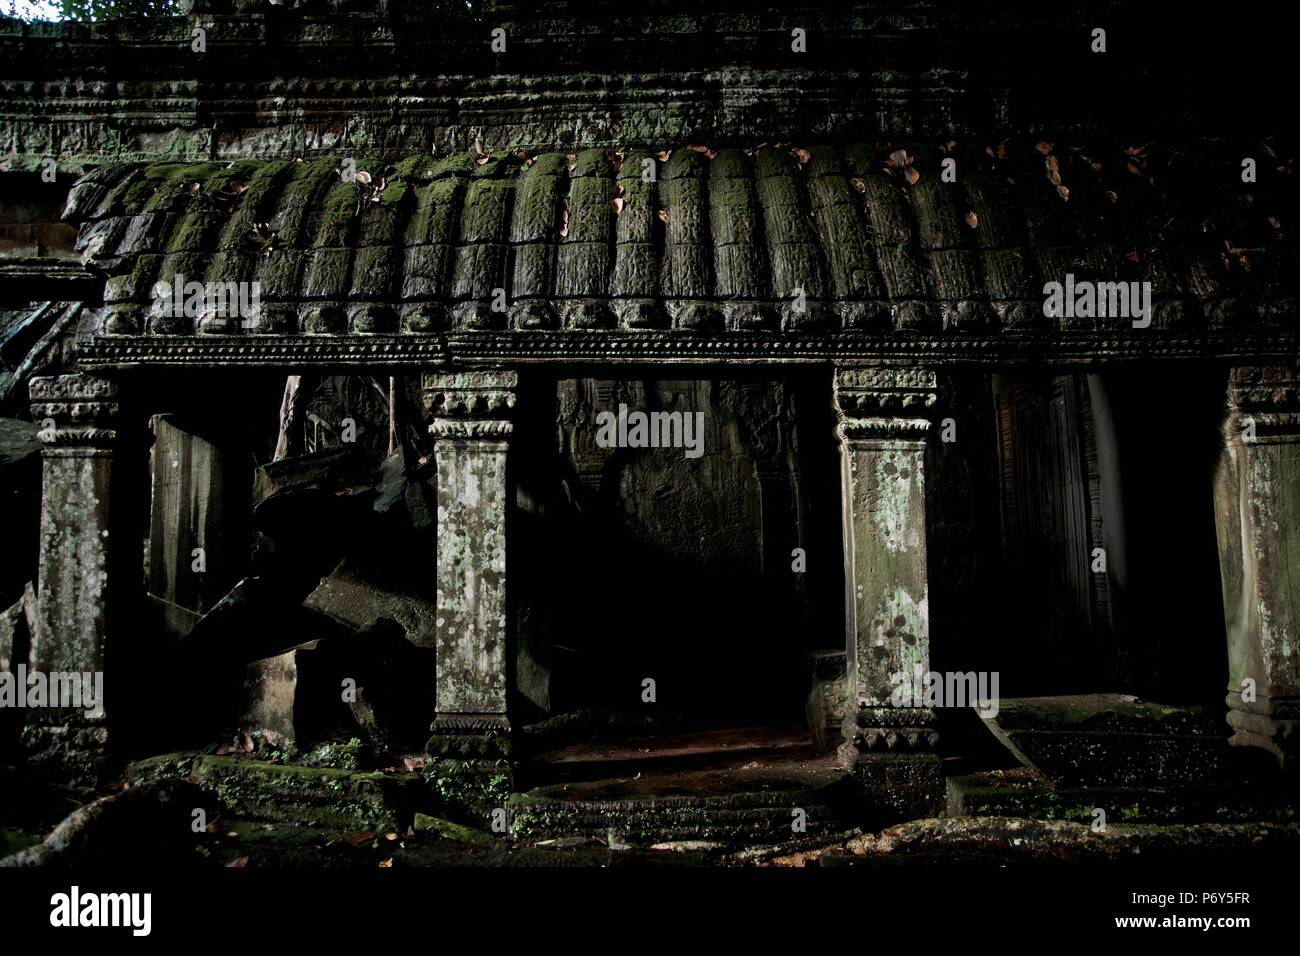 Panoramic of Angkor Wat, ancient Cambodian city hidden in the forest, visited by tourists - Stock Image